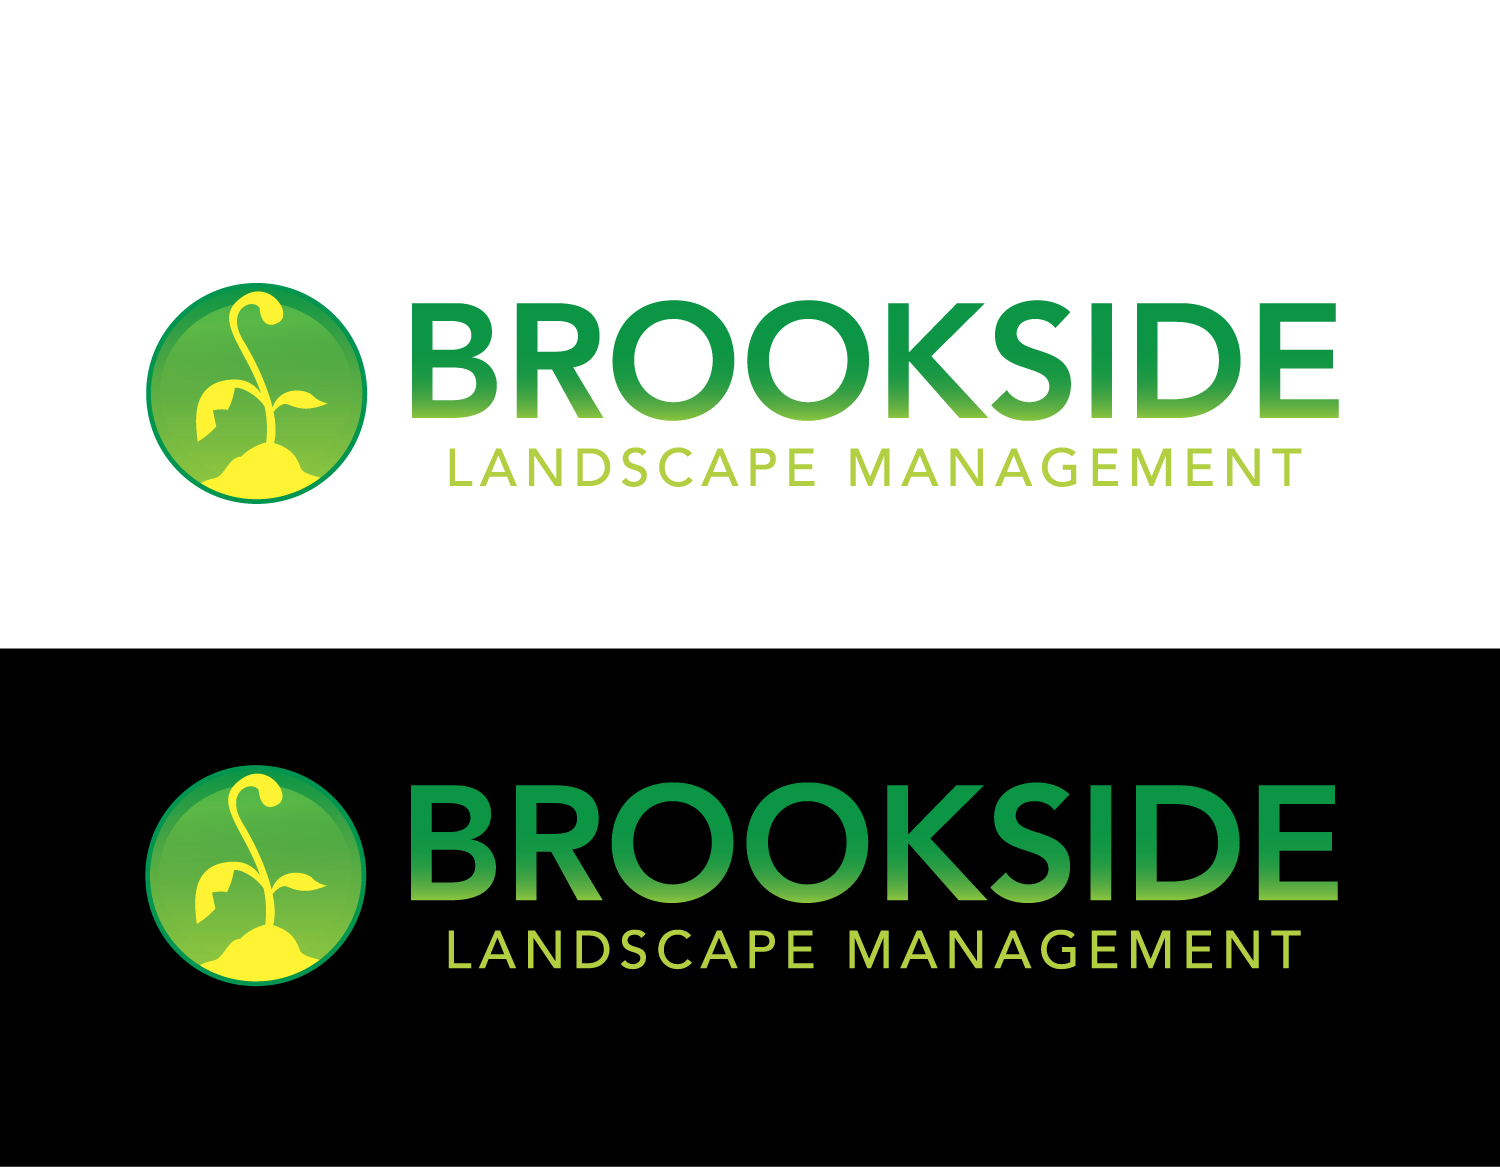 Logo Design by rA - Entry No. 66 in the Logo Design Contest New Logo Design for Brookside Landscape Management.